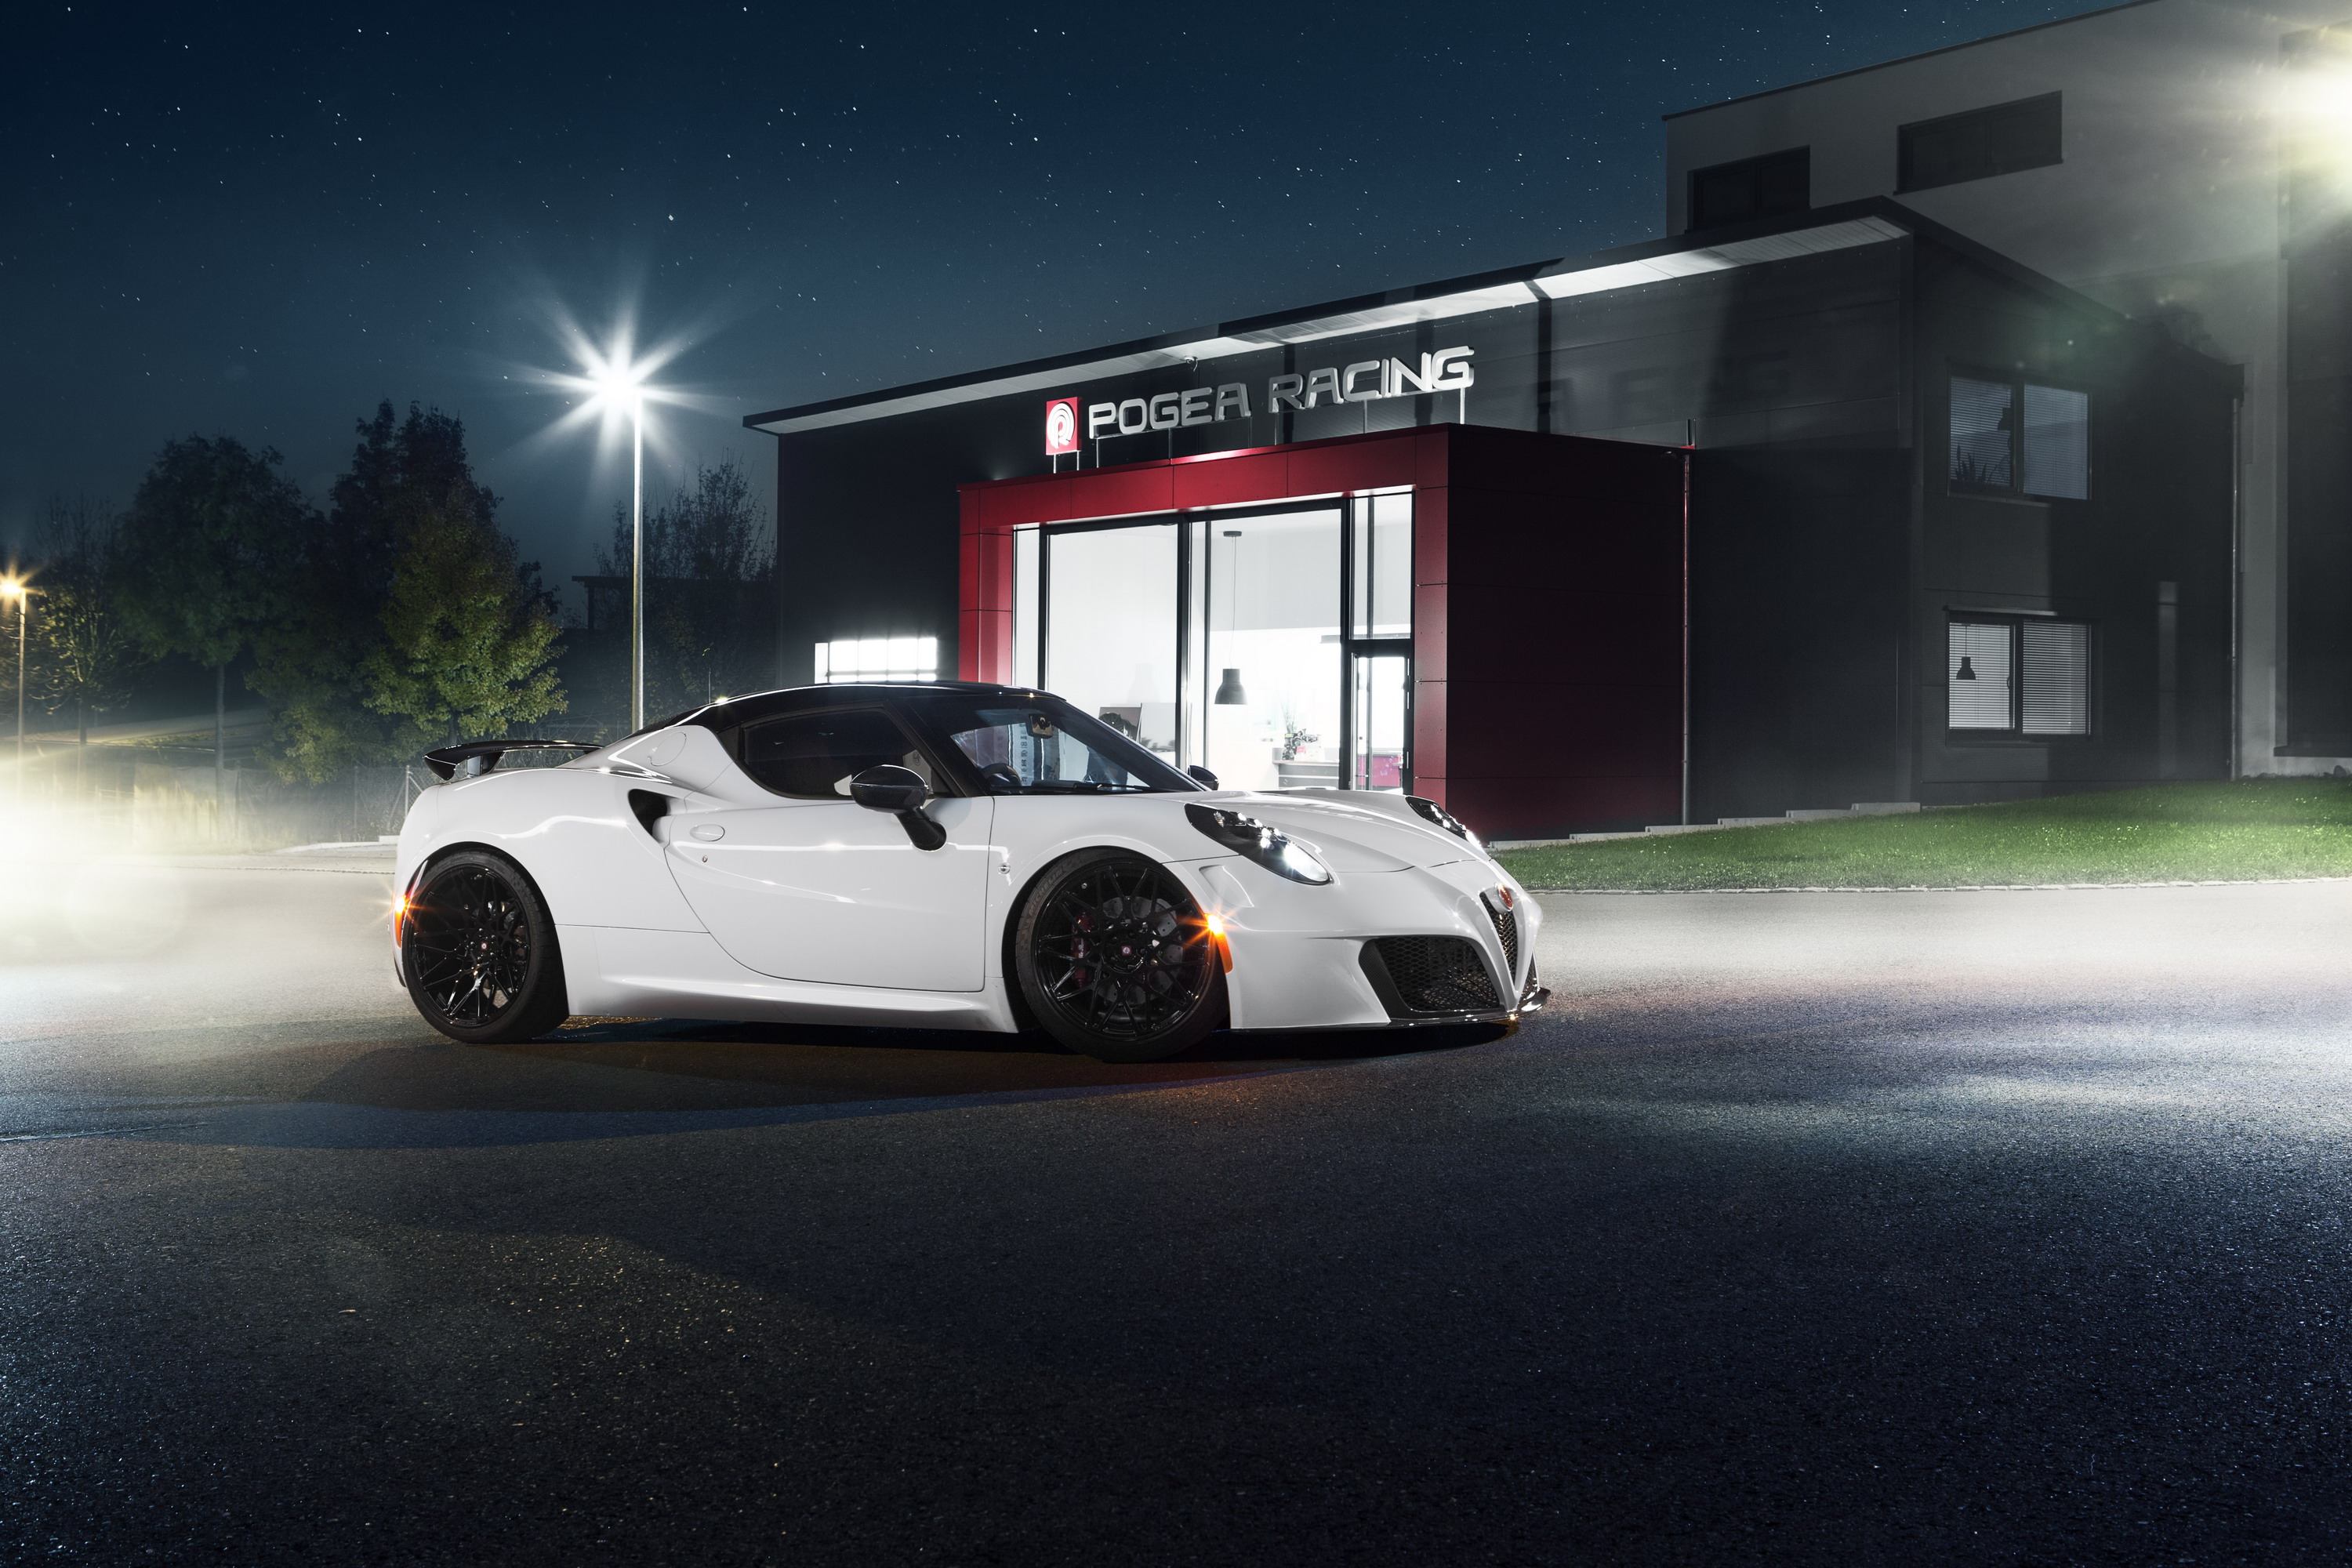 2015 Alfa Romeo 4c Centurion 1plus By Pogea Racing Top Speed Modifications